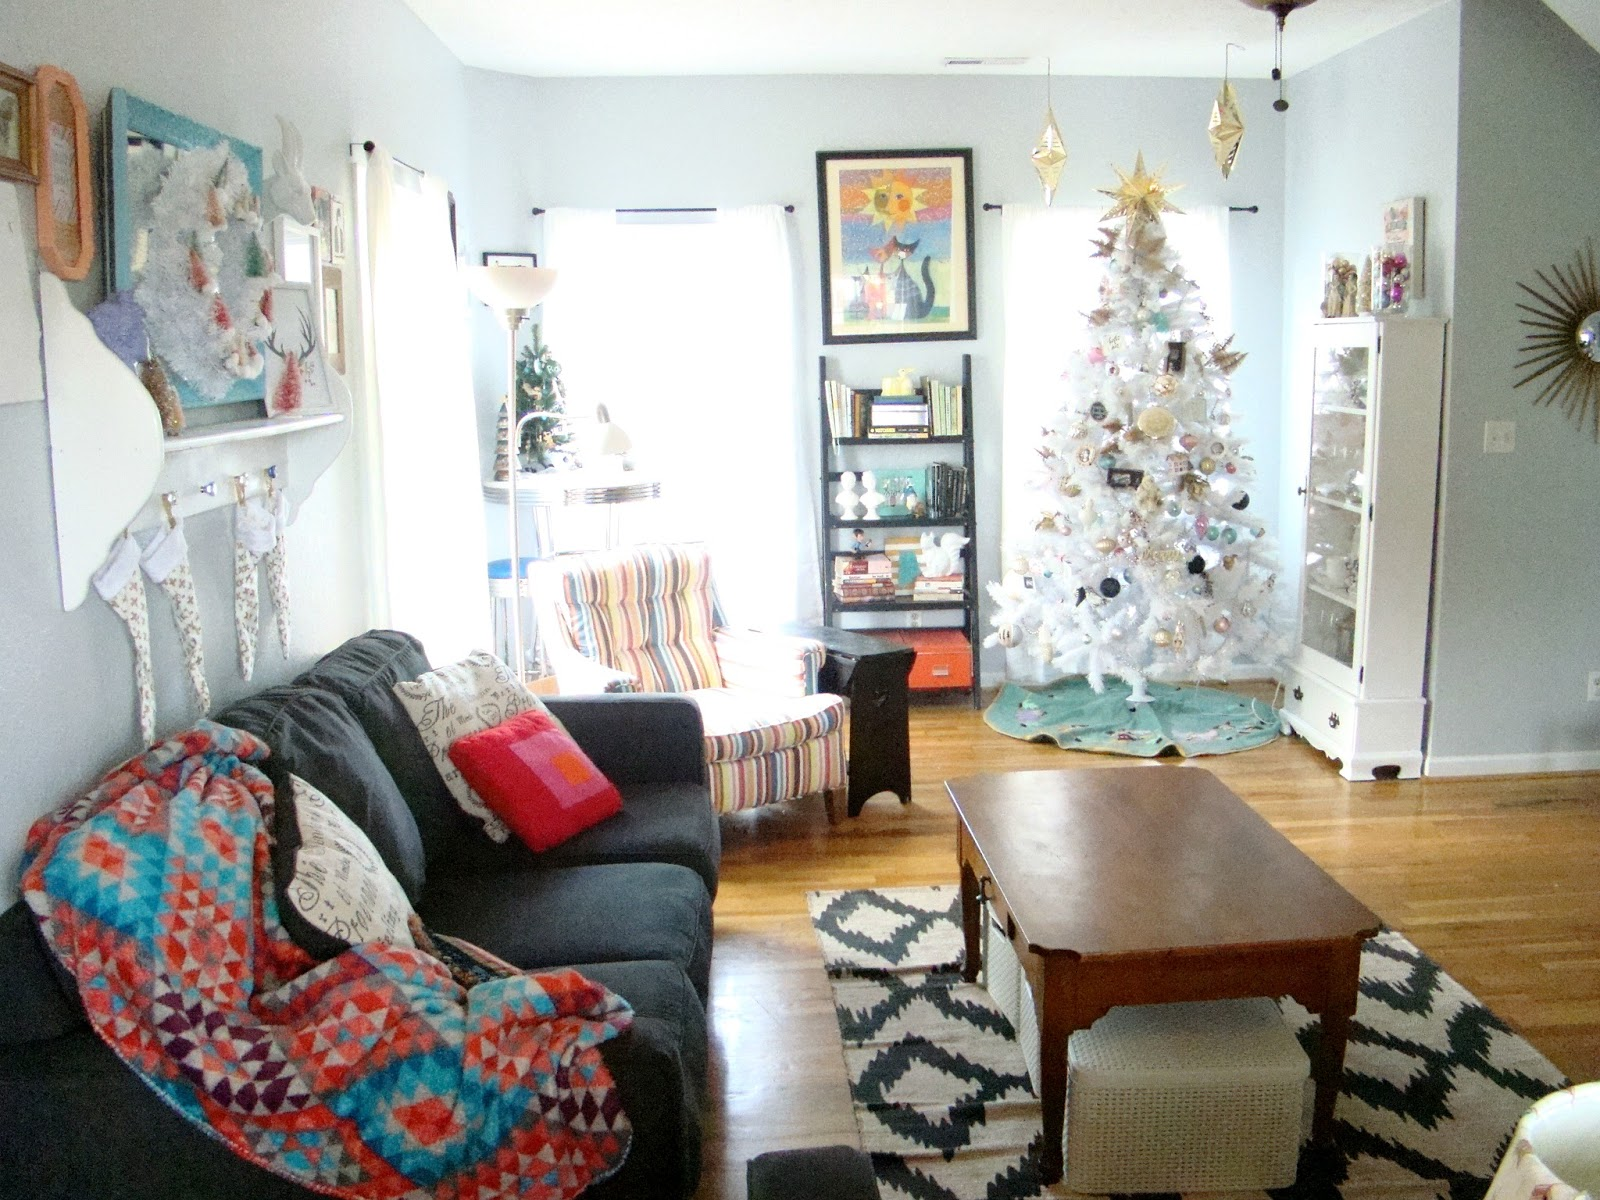 Southern Bluebird Day: Simple Vintage Modern Christmas Home Tour